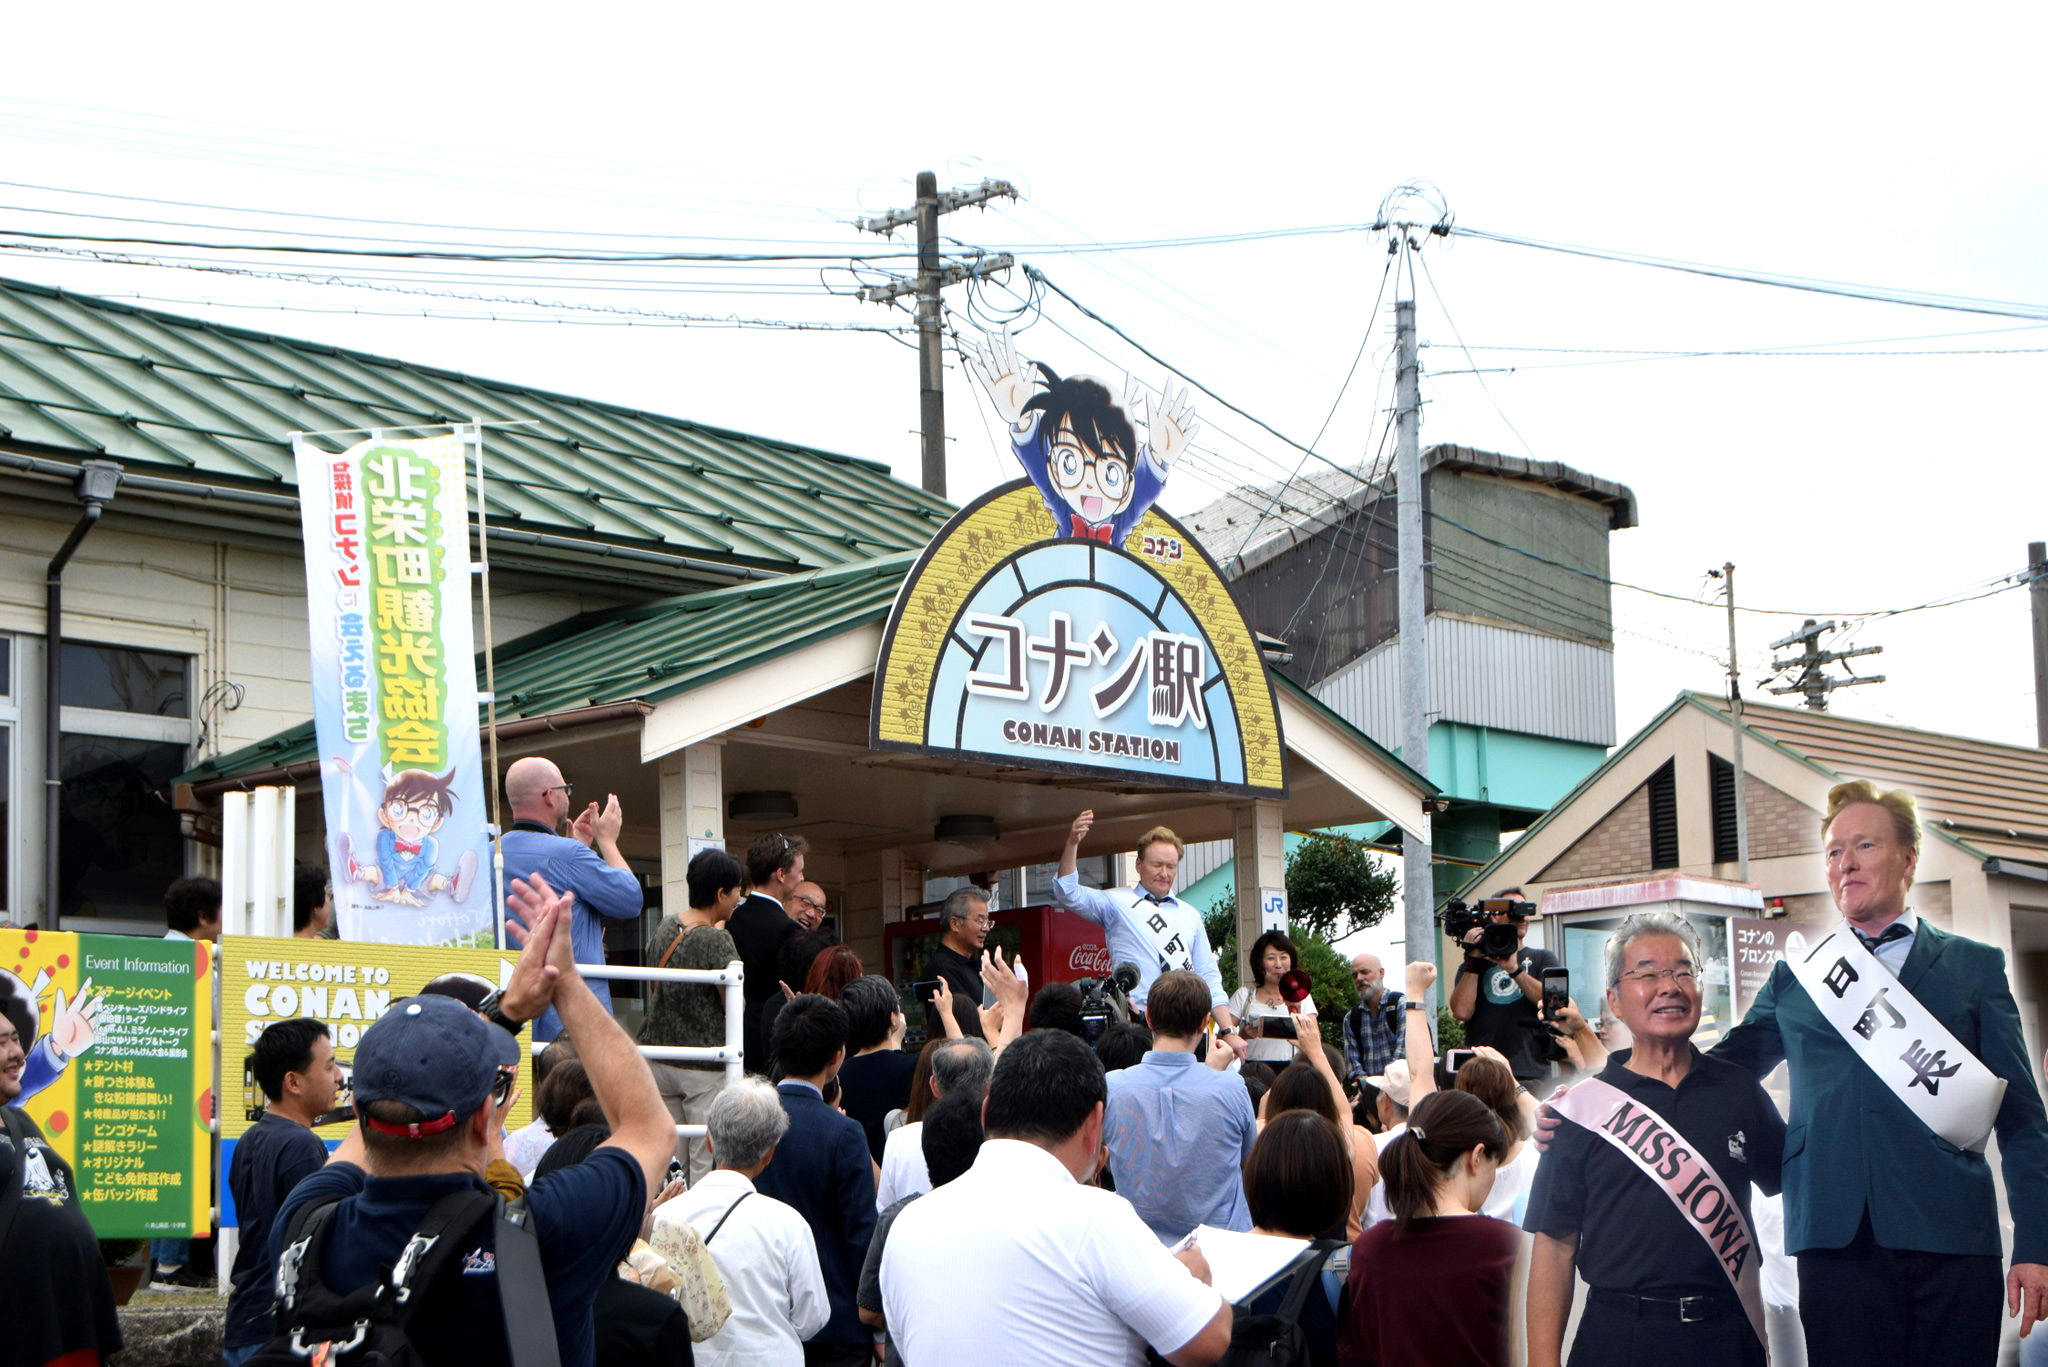 """U.S. Comedian and Talk Show Host, Conan O'Brien, stands with the mayor of Hokuei (""""Conan Town"""") in Tottori Prefecture, Mayor Matsumoto, at Conan Station to settle their feud."""